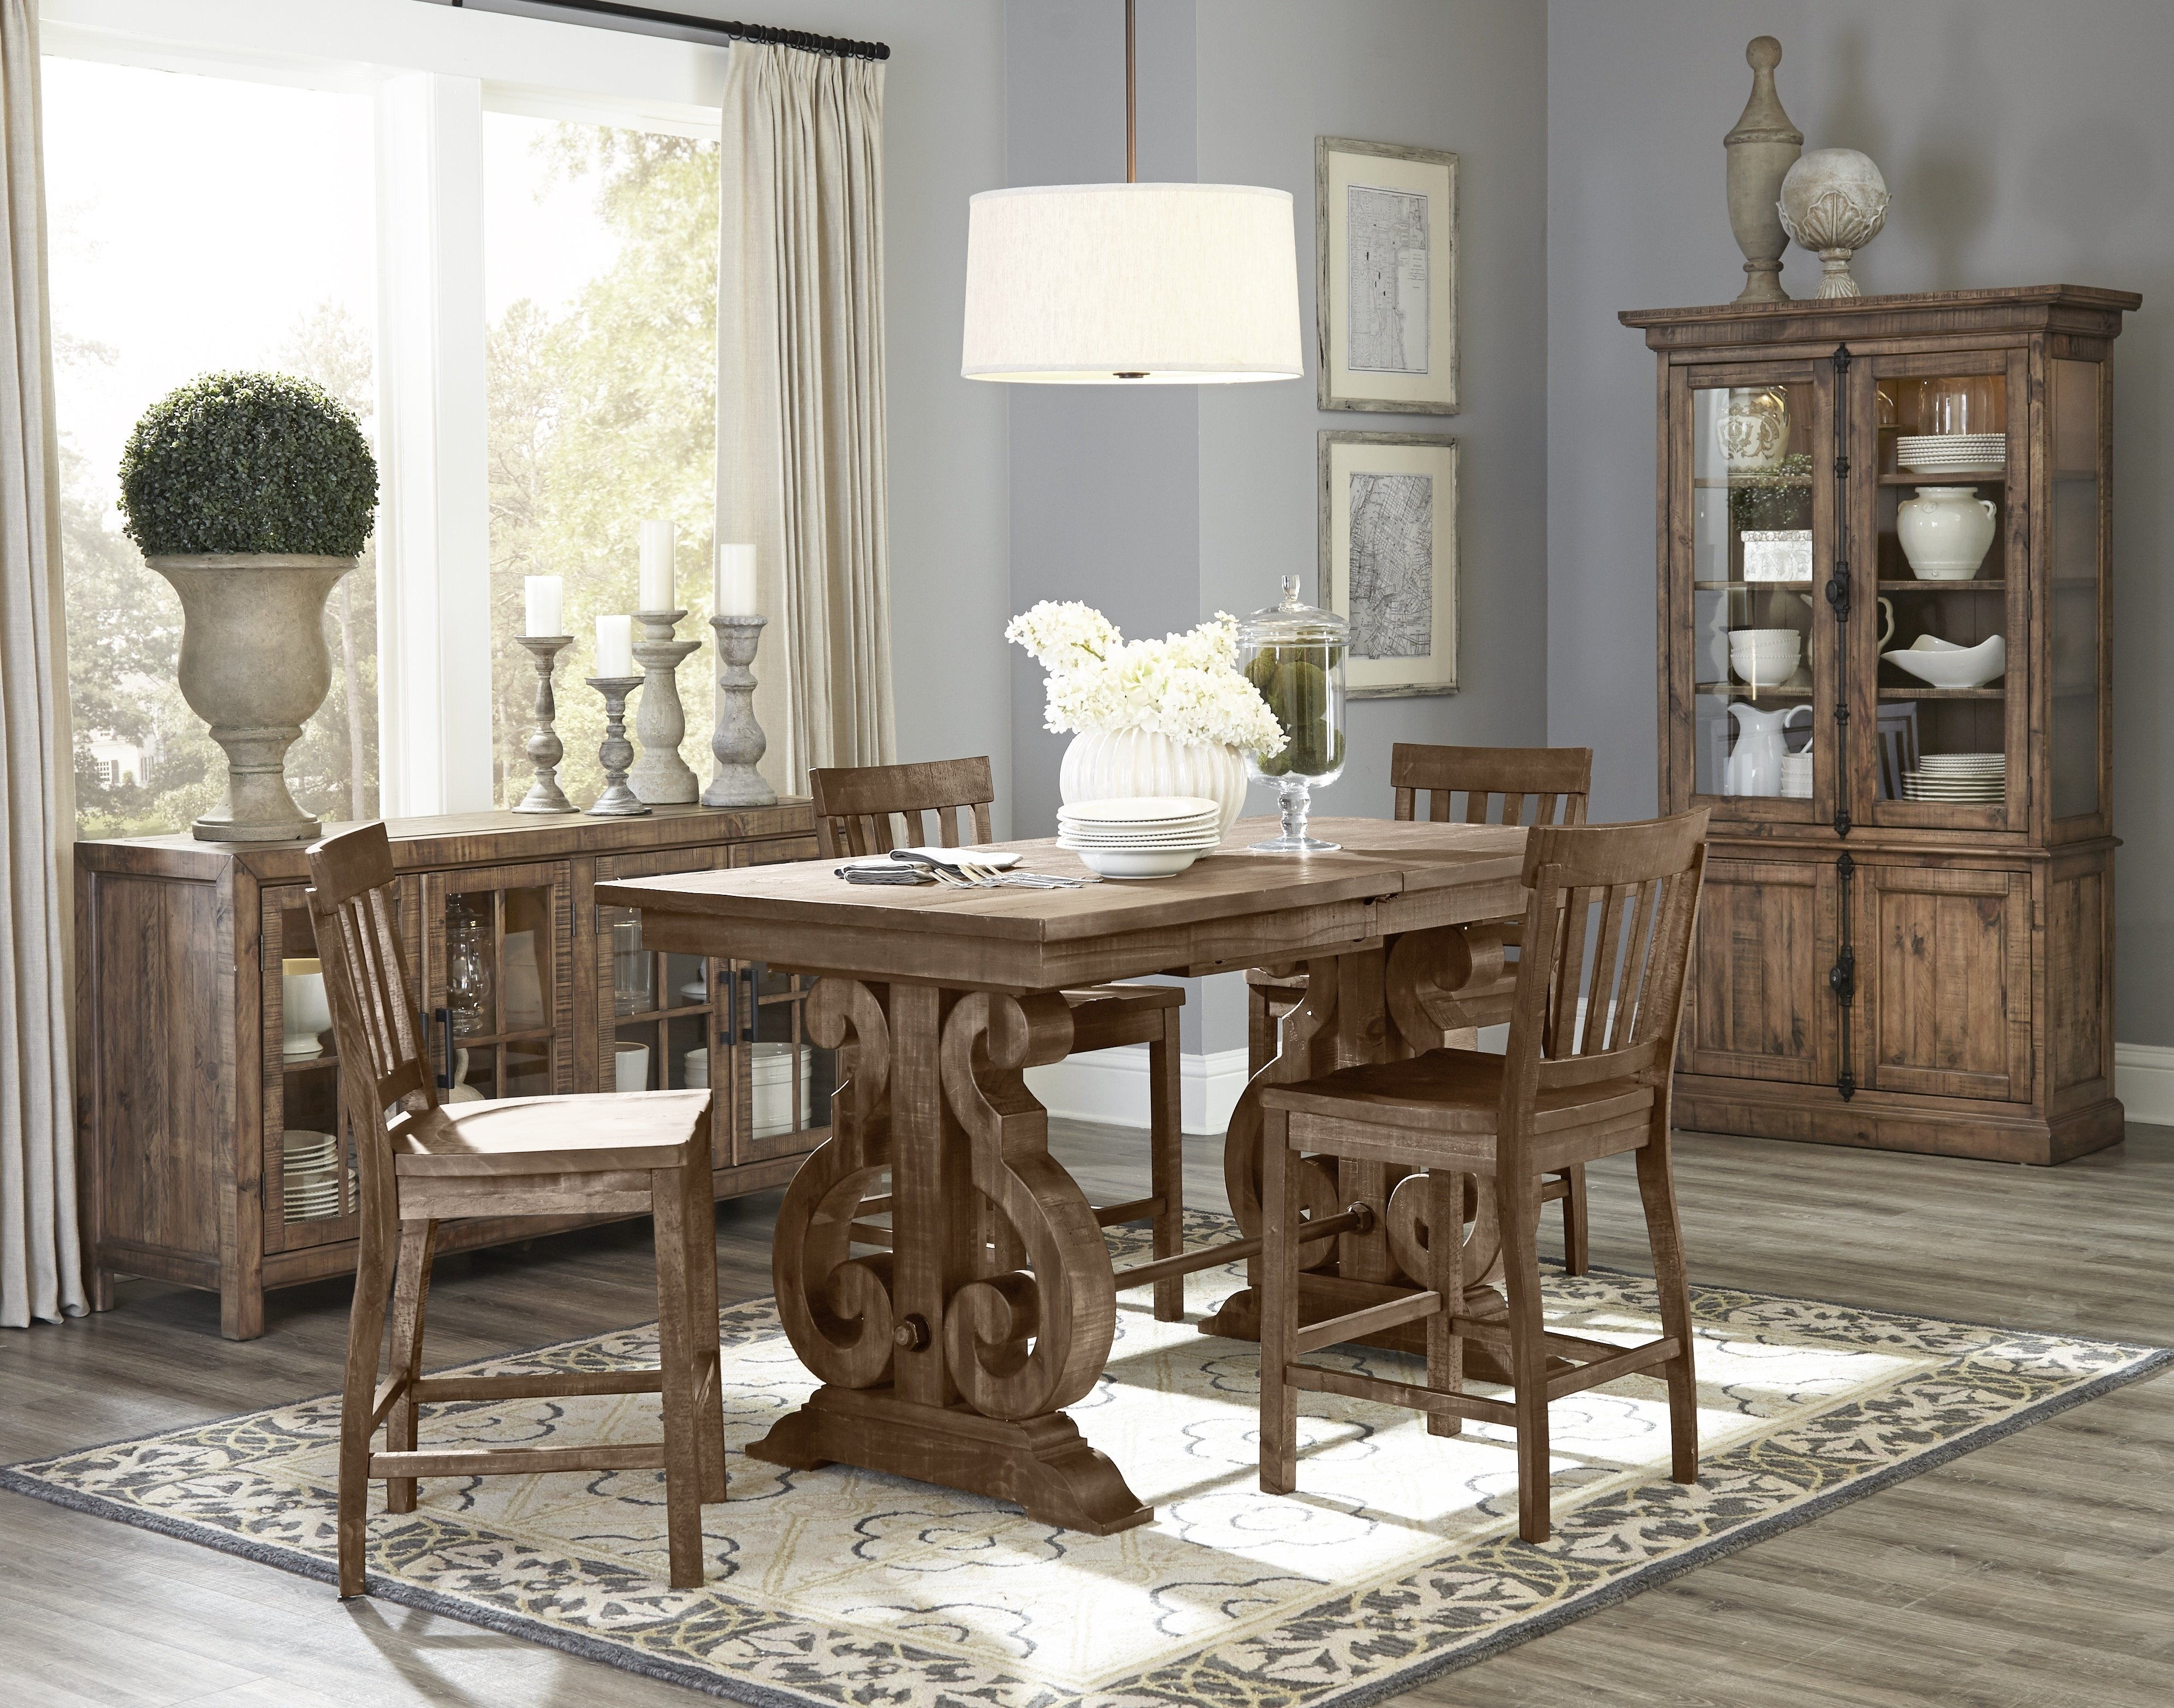 Greyleigh 5 Piece Dining Set | Wayfair For Most Current Cora 5 Piece Dining Sets (Photo 20 of 20)